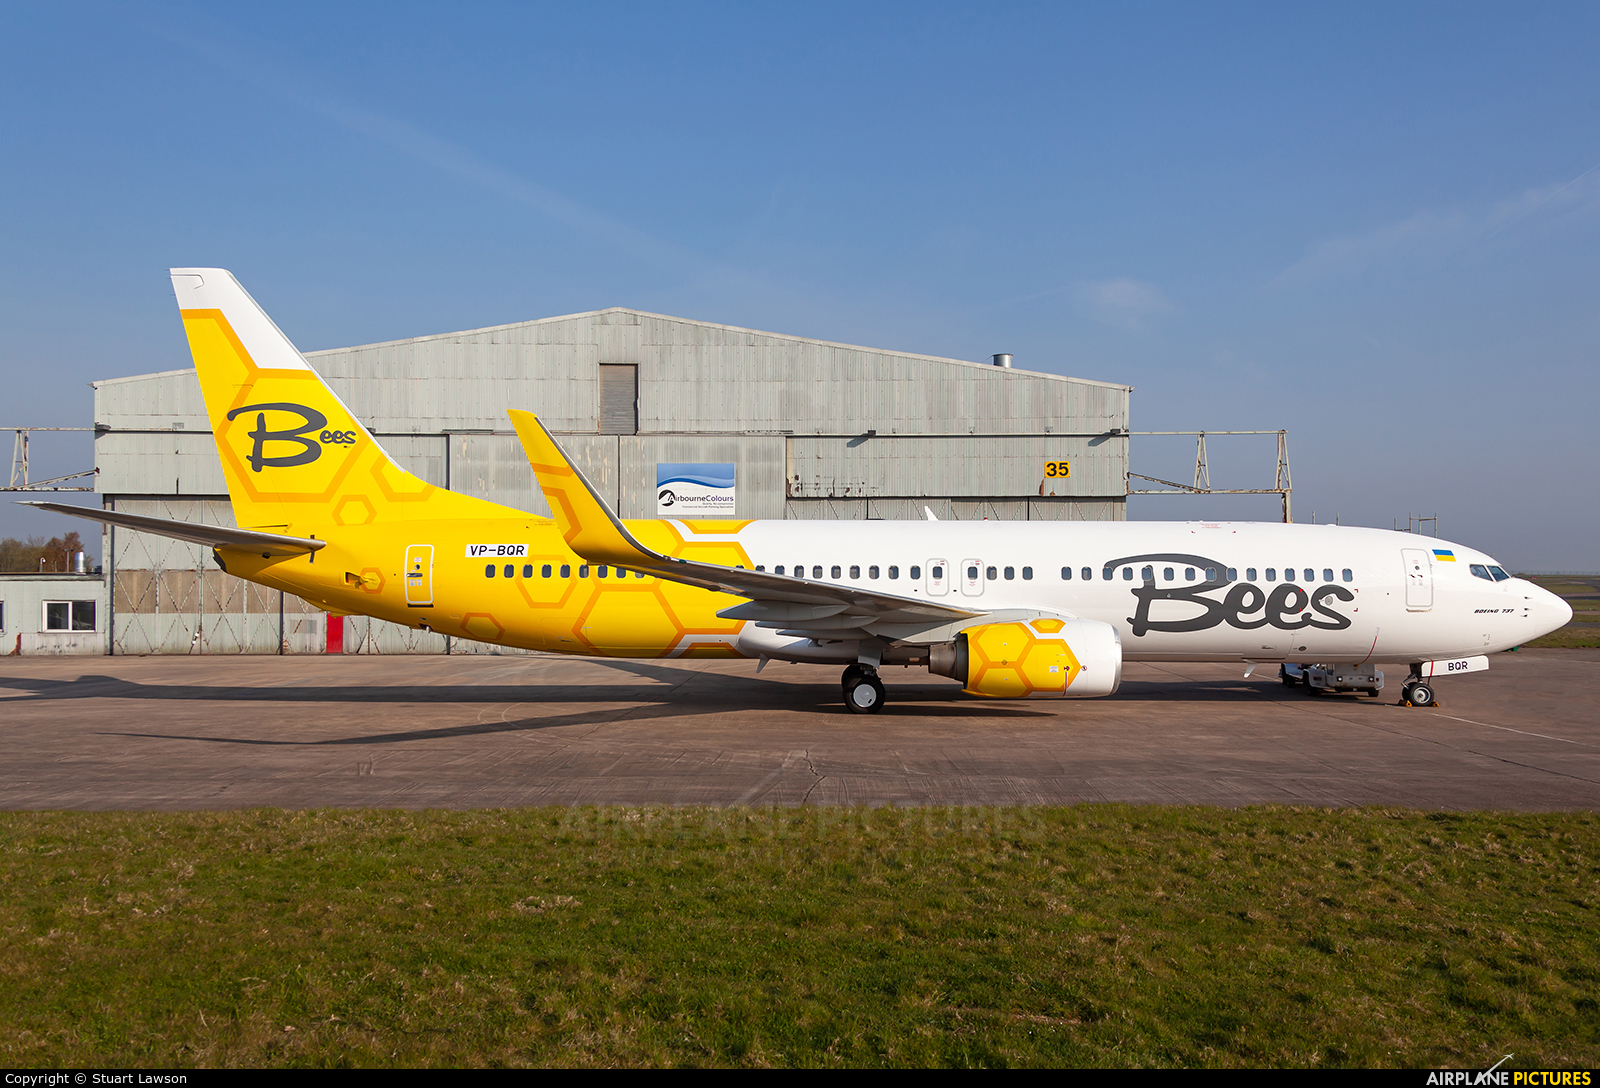 Bees Airline VP-BQR aircraft at East Midlands